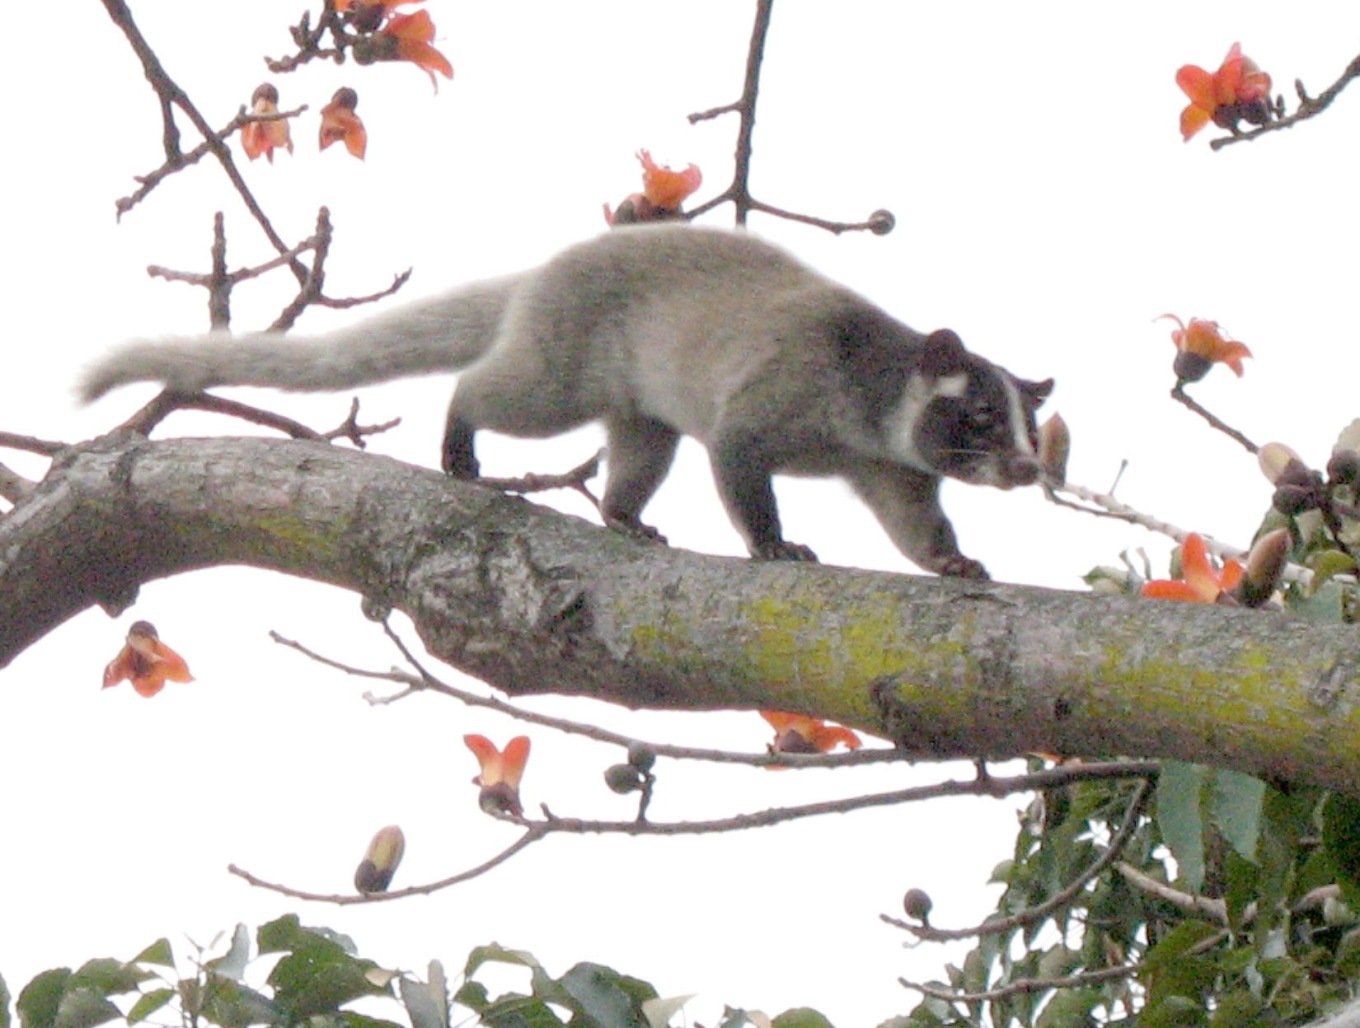 Thank you, Wikipedia, for a much better pic. You can read more factoids about these fine furry friends on the Masked Palm Civet page.